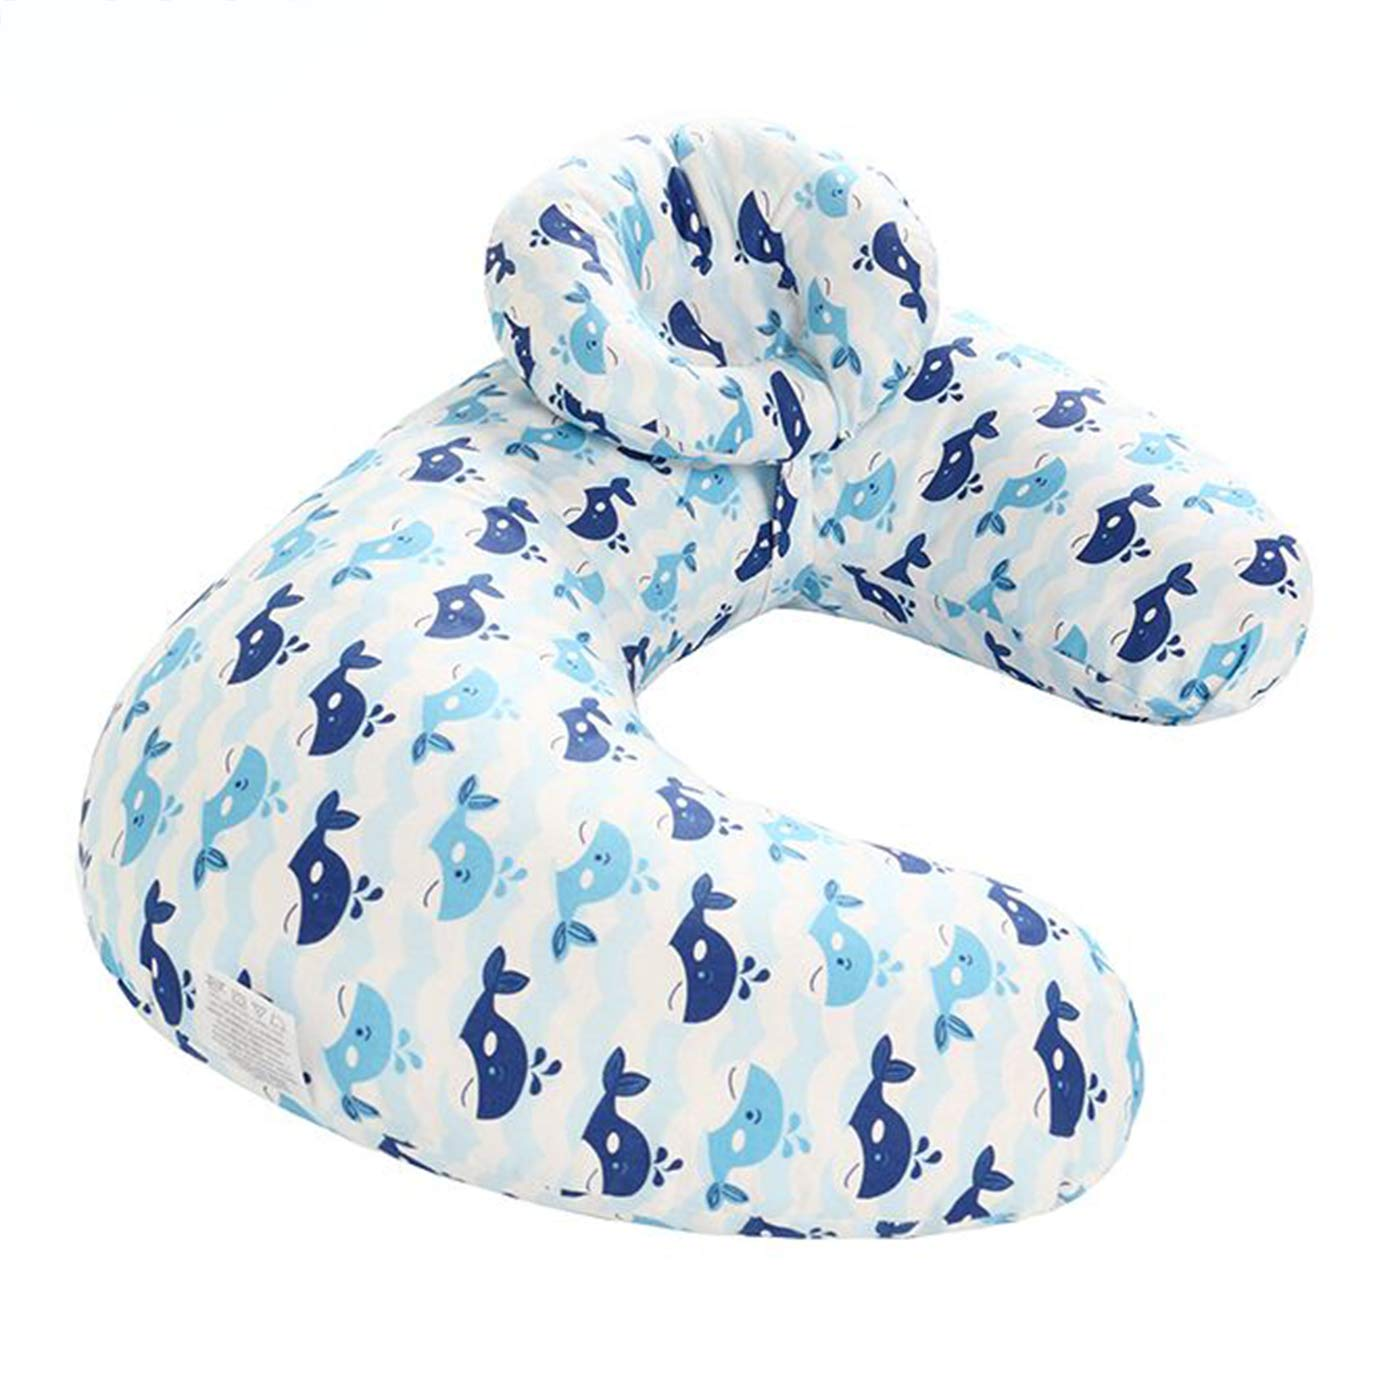 Borje New Design 45°Angle Newborn Breastfeeding Adjustable Pillow for Babies Nursing Baby Lounger (Whale)